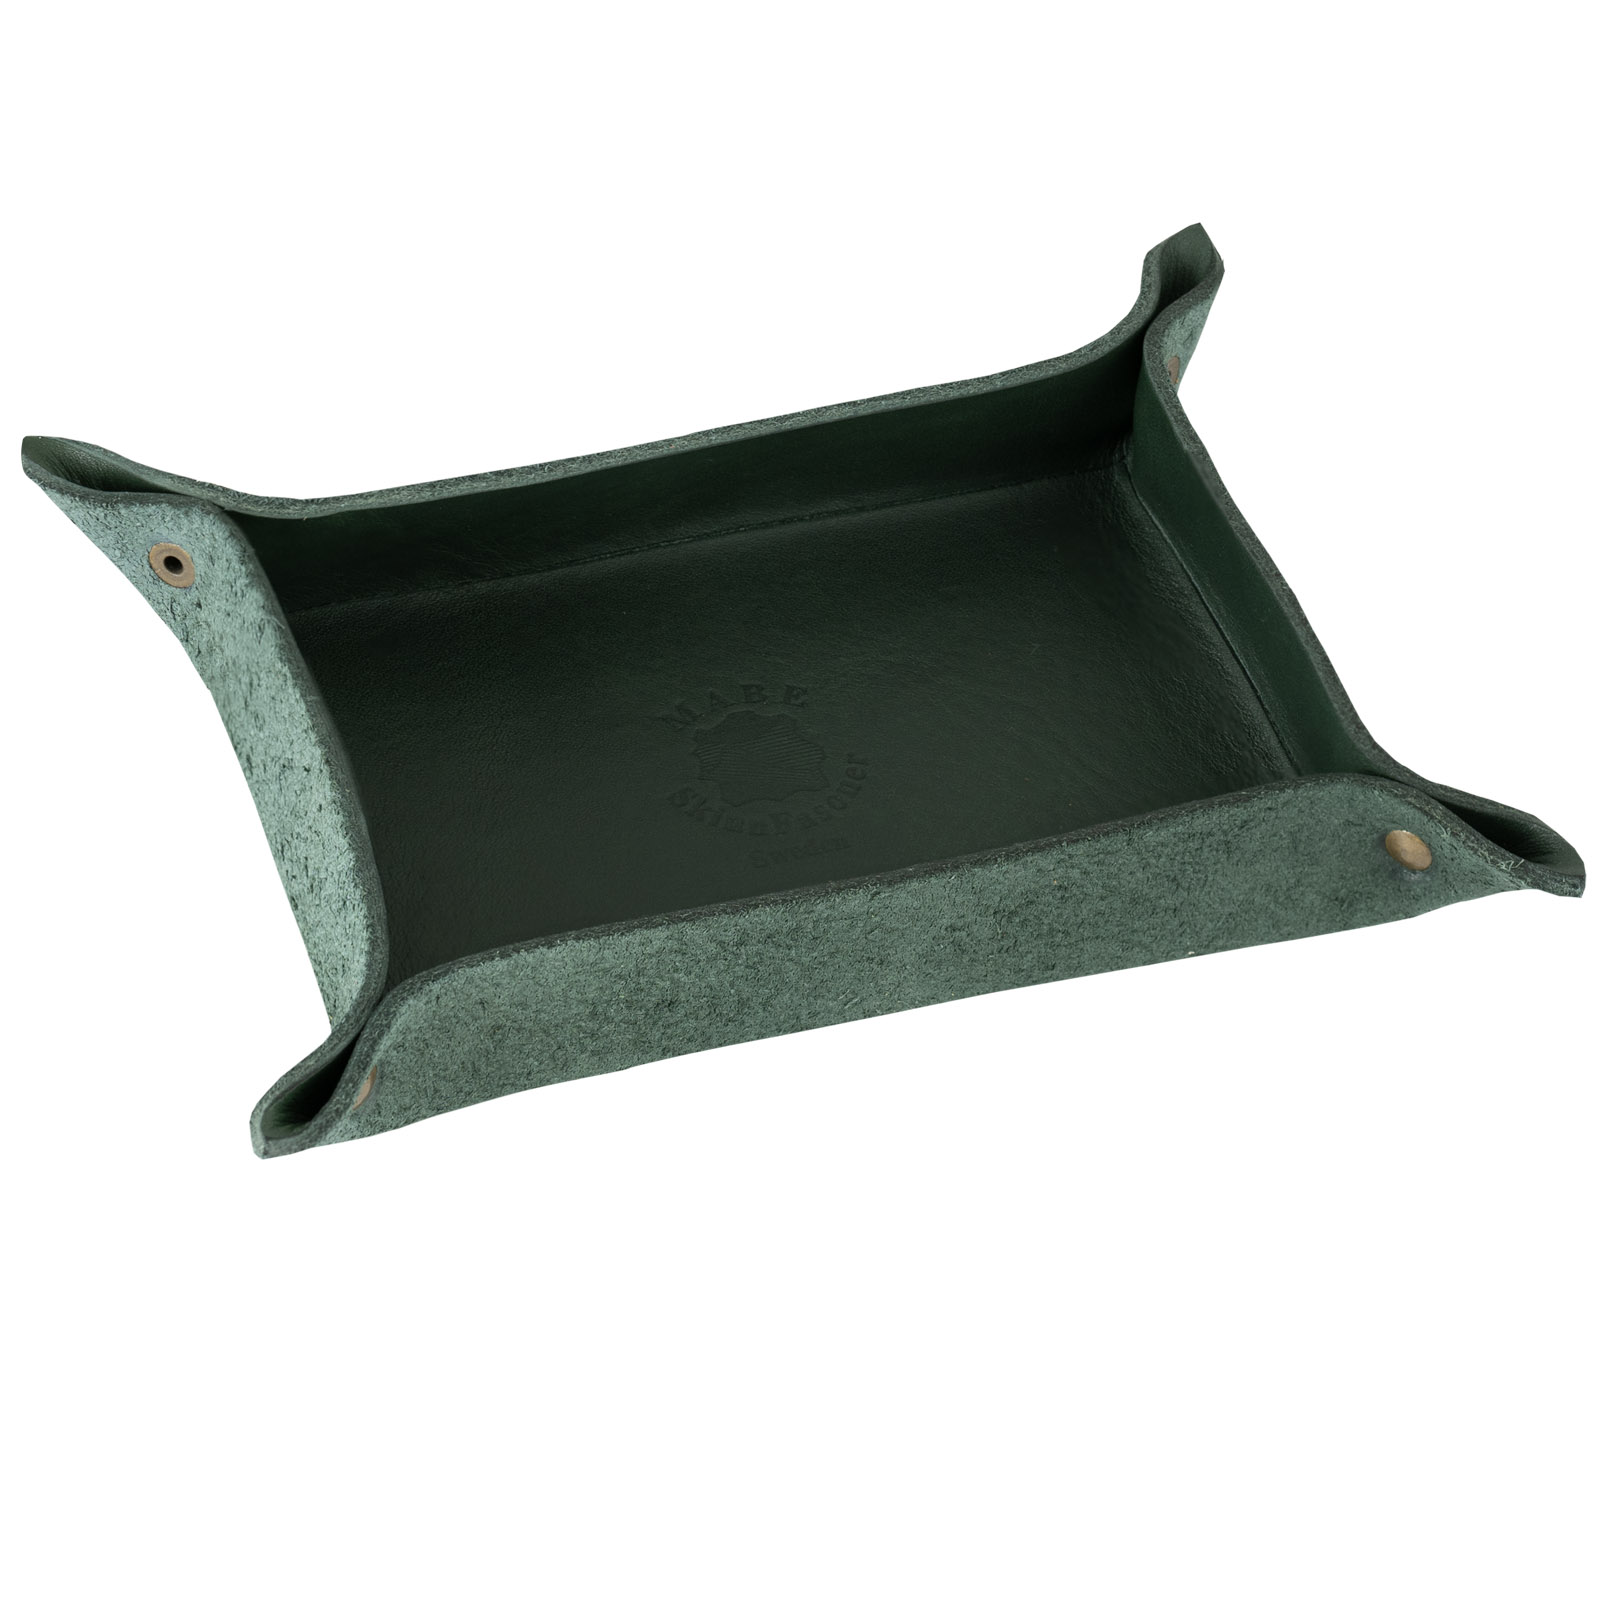 Leather tray green